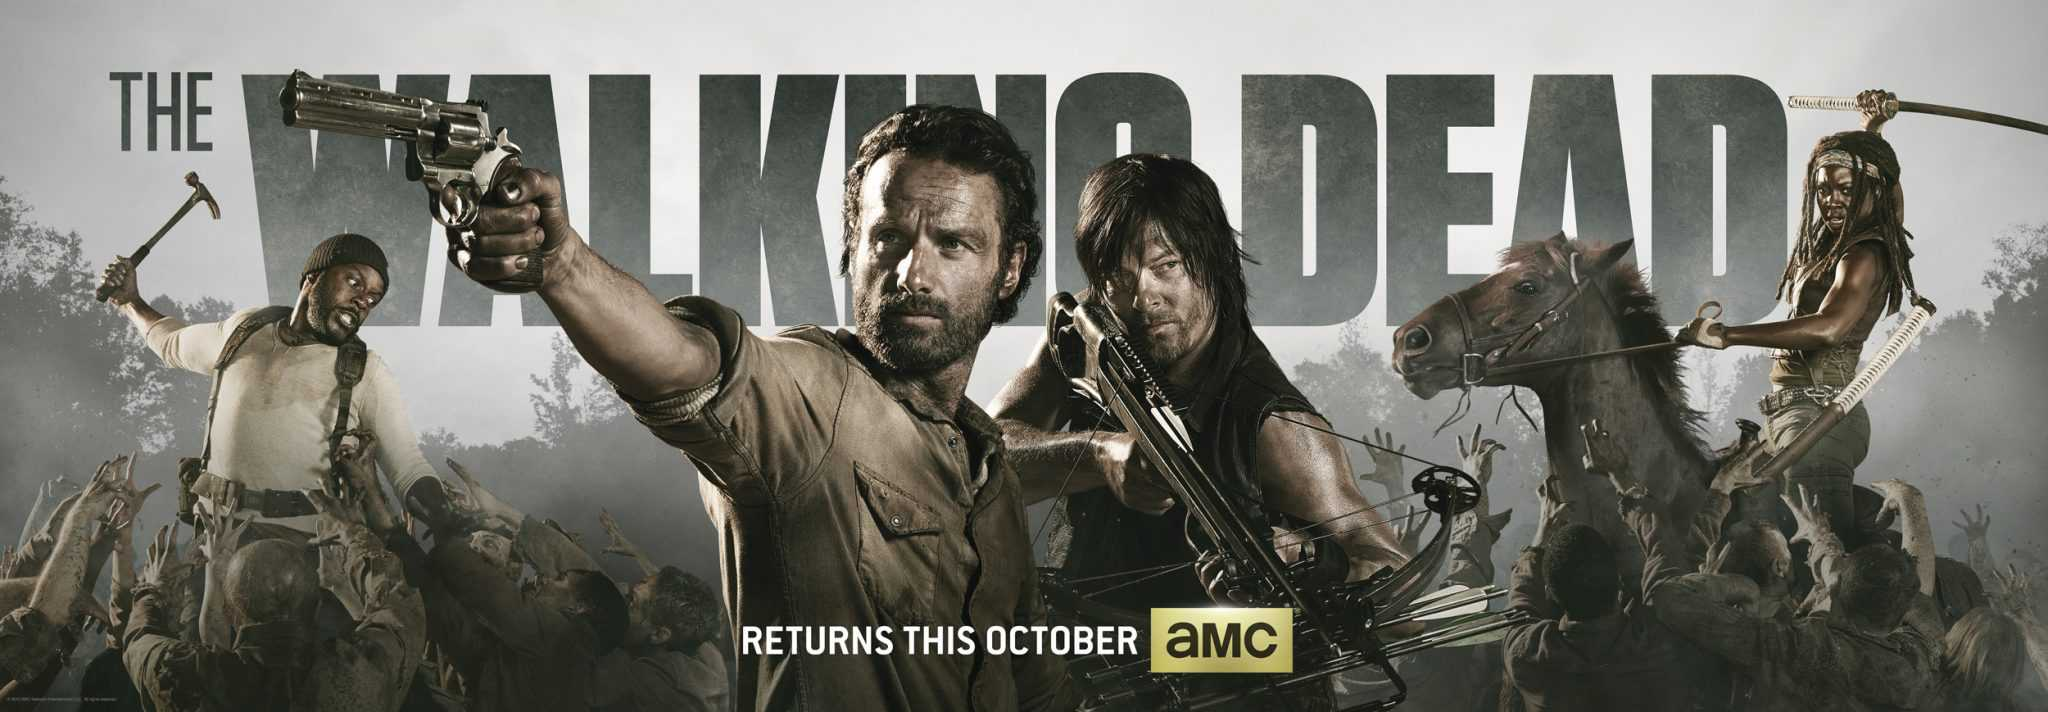 the walking dead trailer 8 stagione